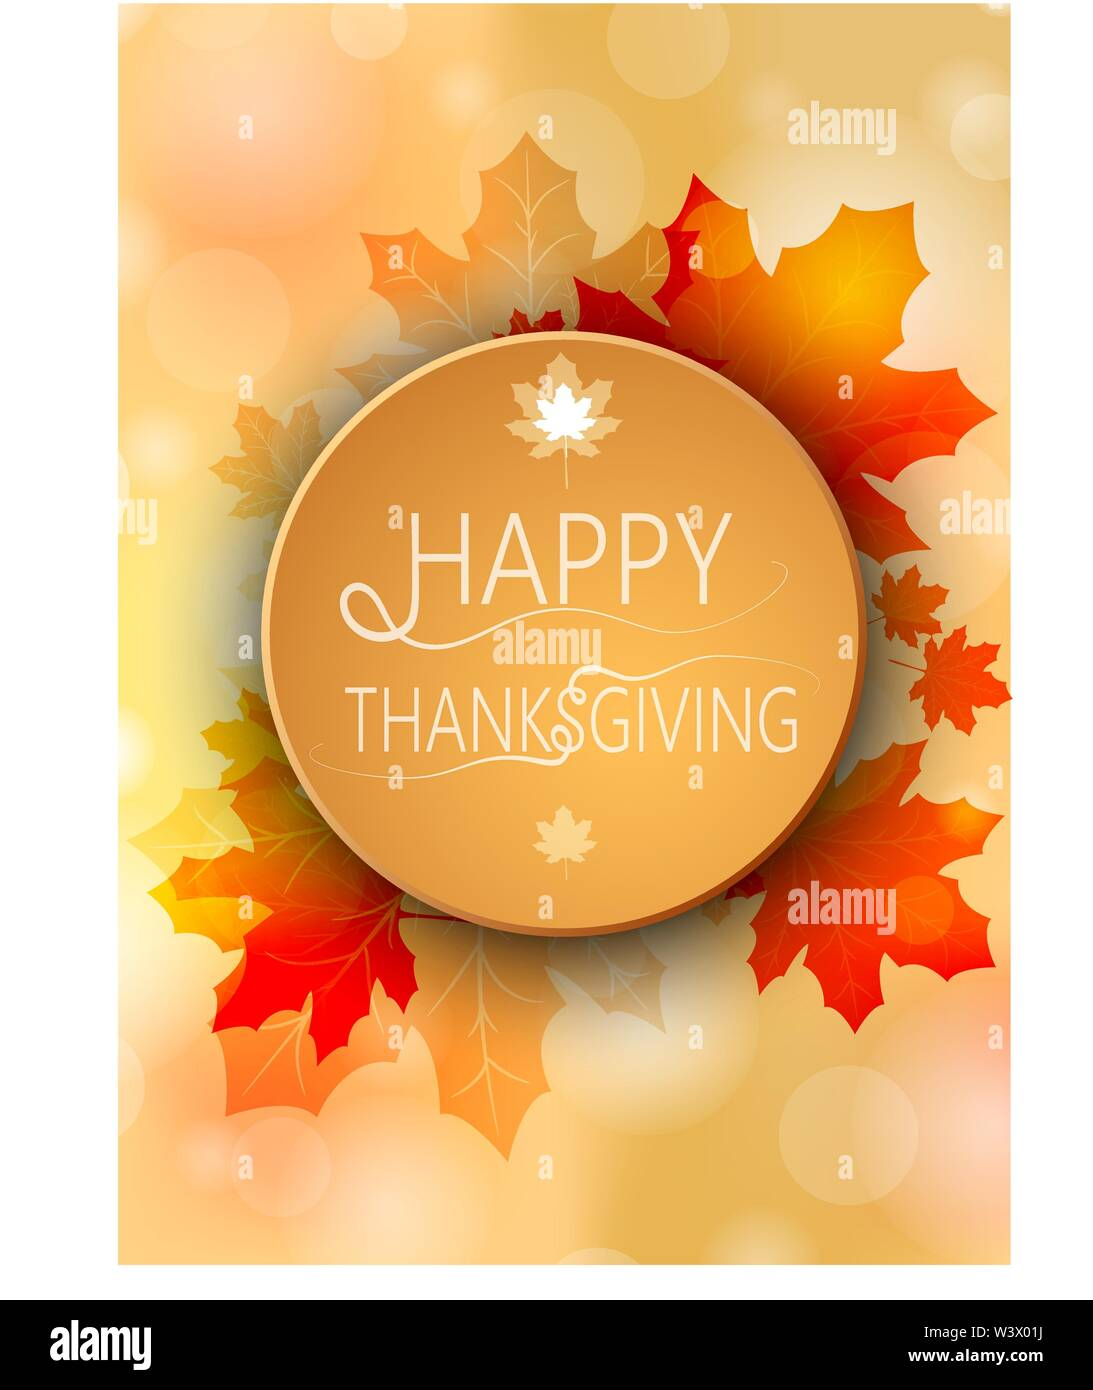 Banner Happy Thanksgiving on autumn round background. Vector illustration. - Stock Image